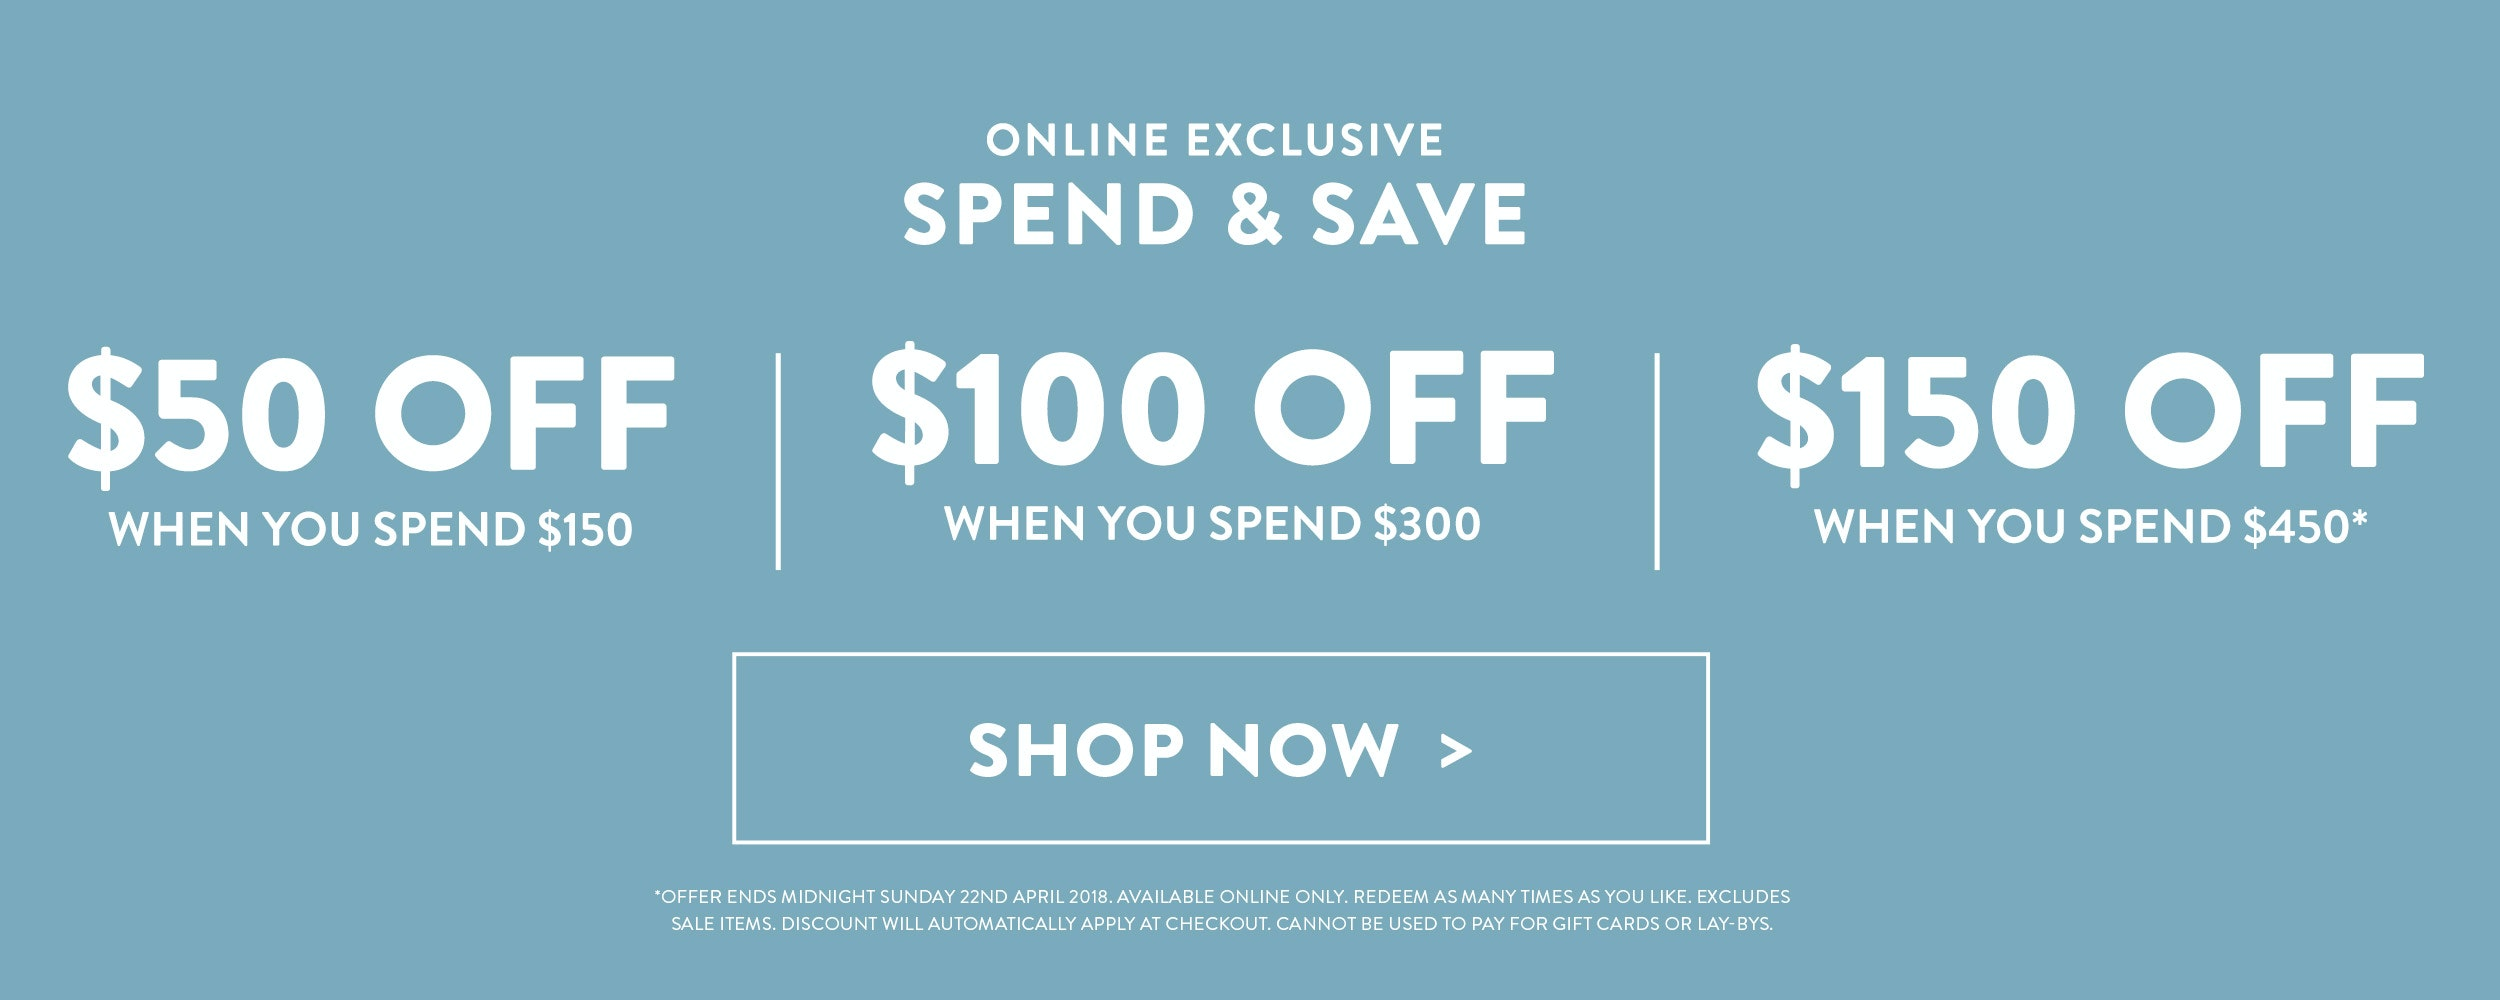 Spend and Save Online